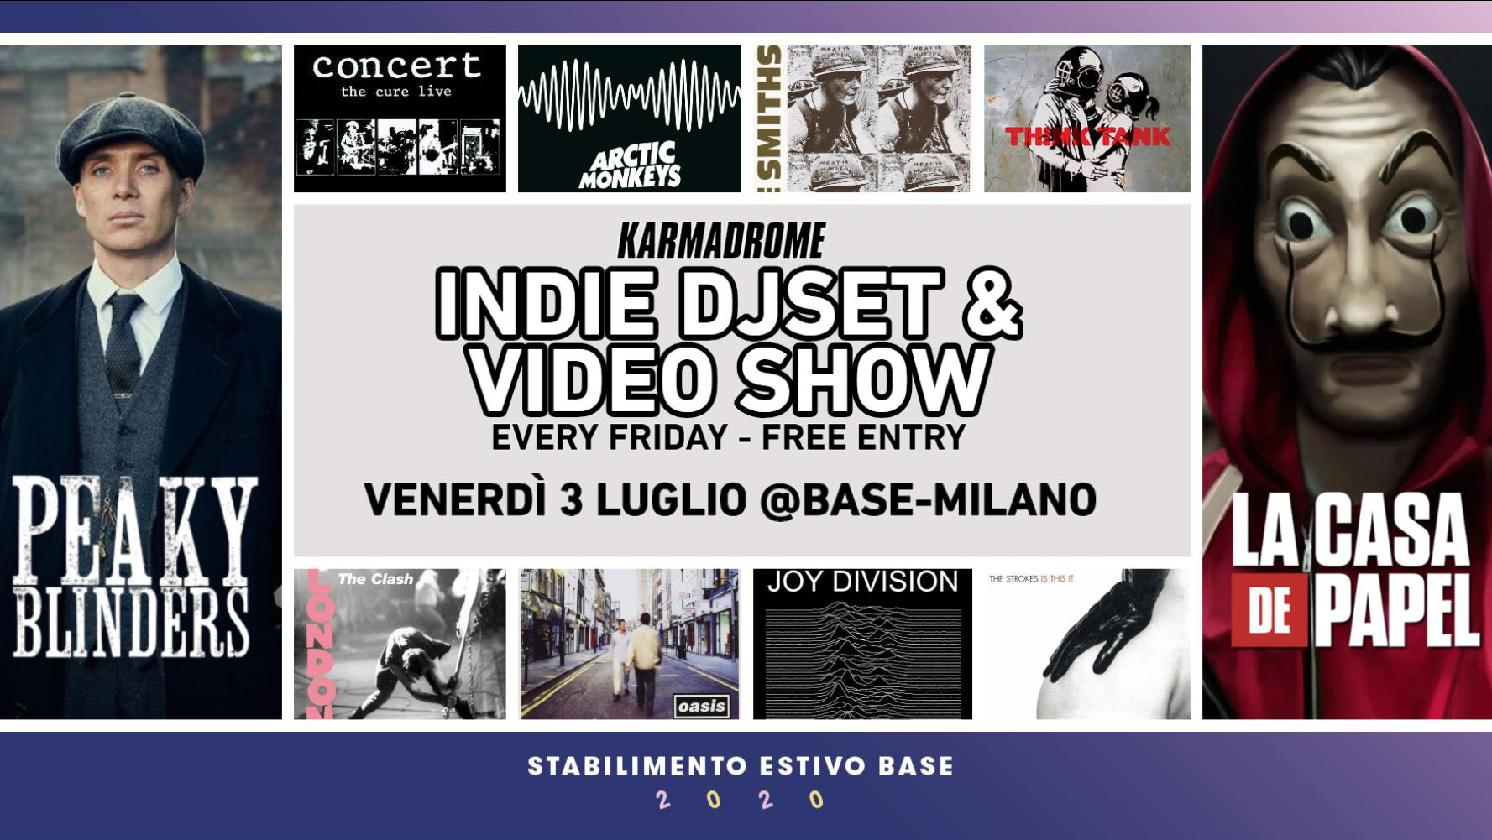 Karmadrome: Indie Djset + Video Show @Base-Milano